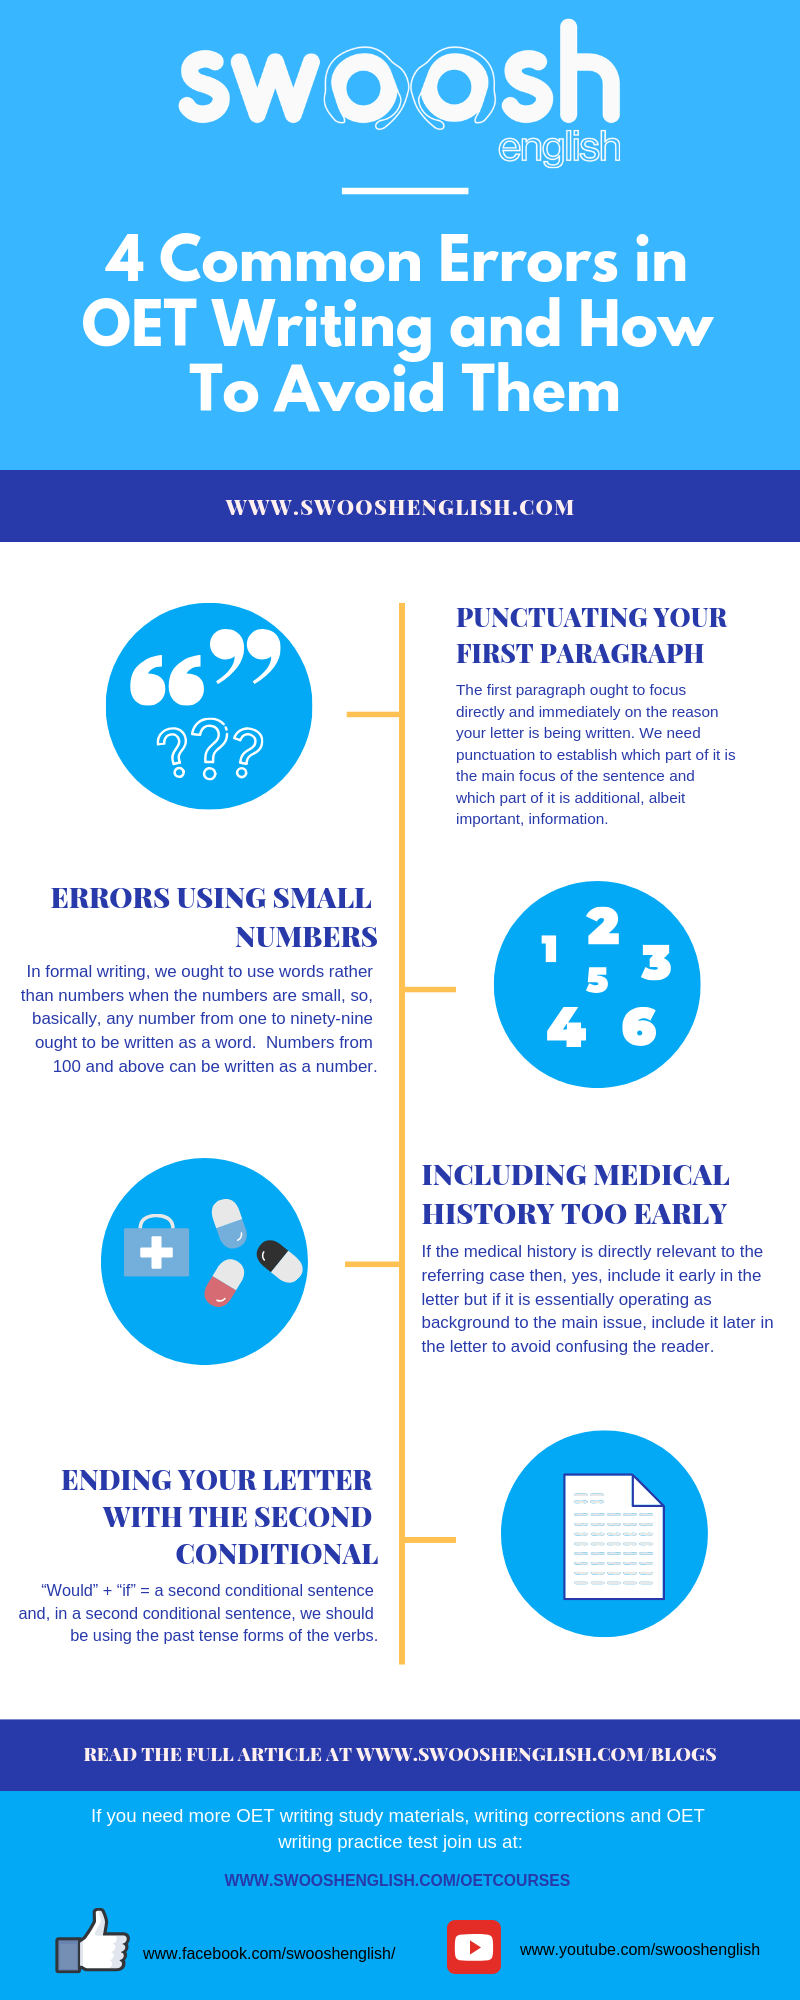 Swoosh English 4 Common Errors in OET Writing and How to avoid them infographic